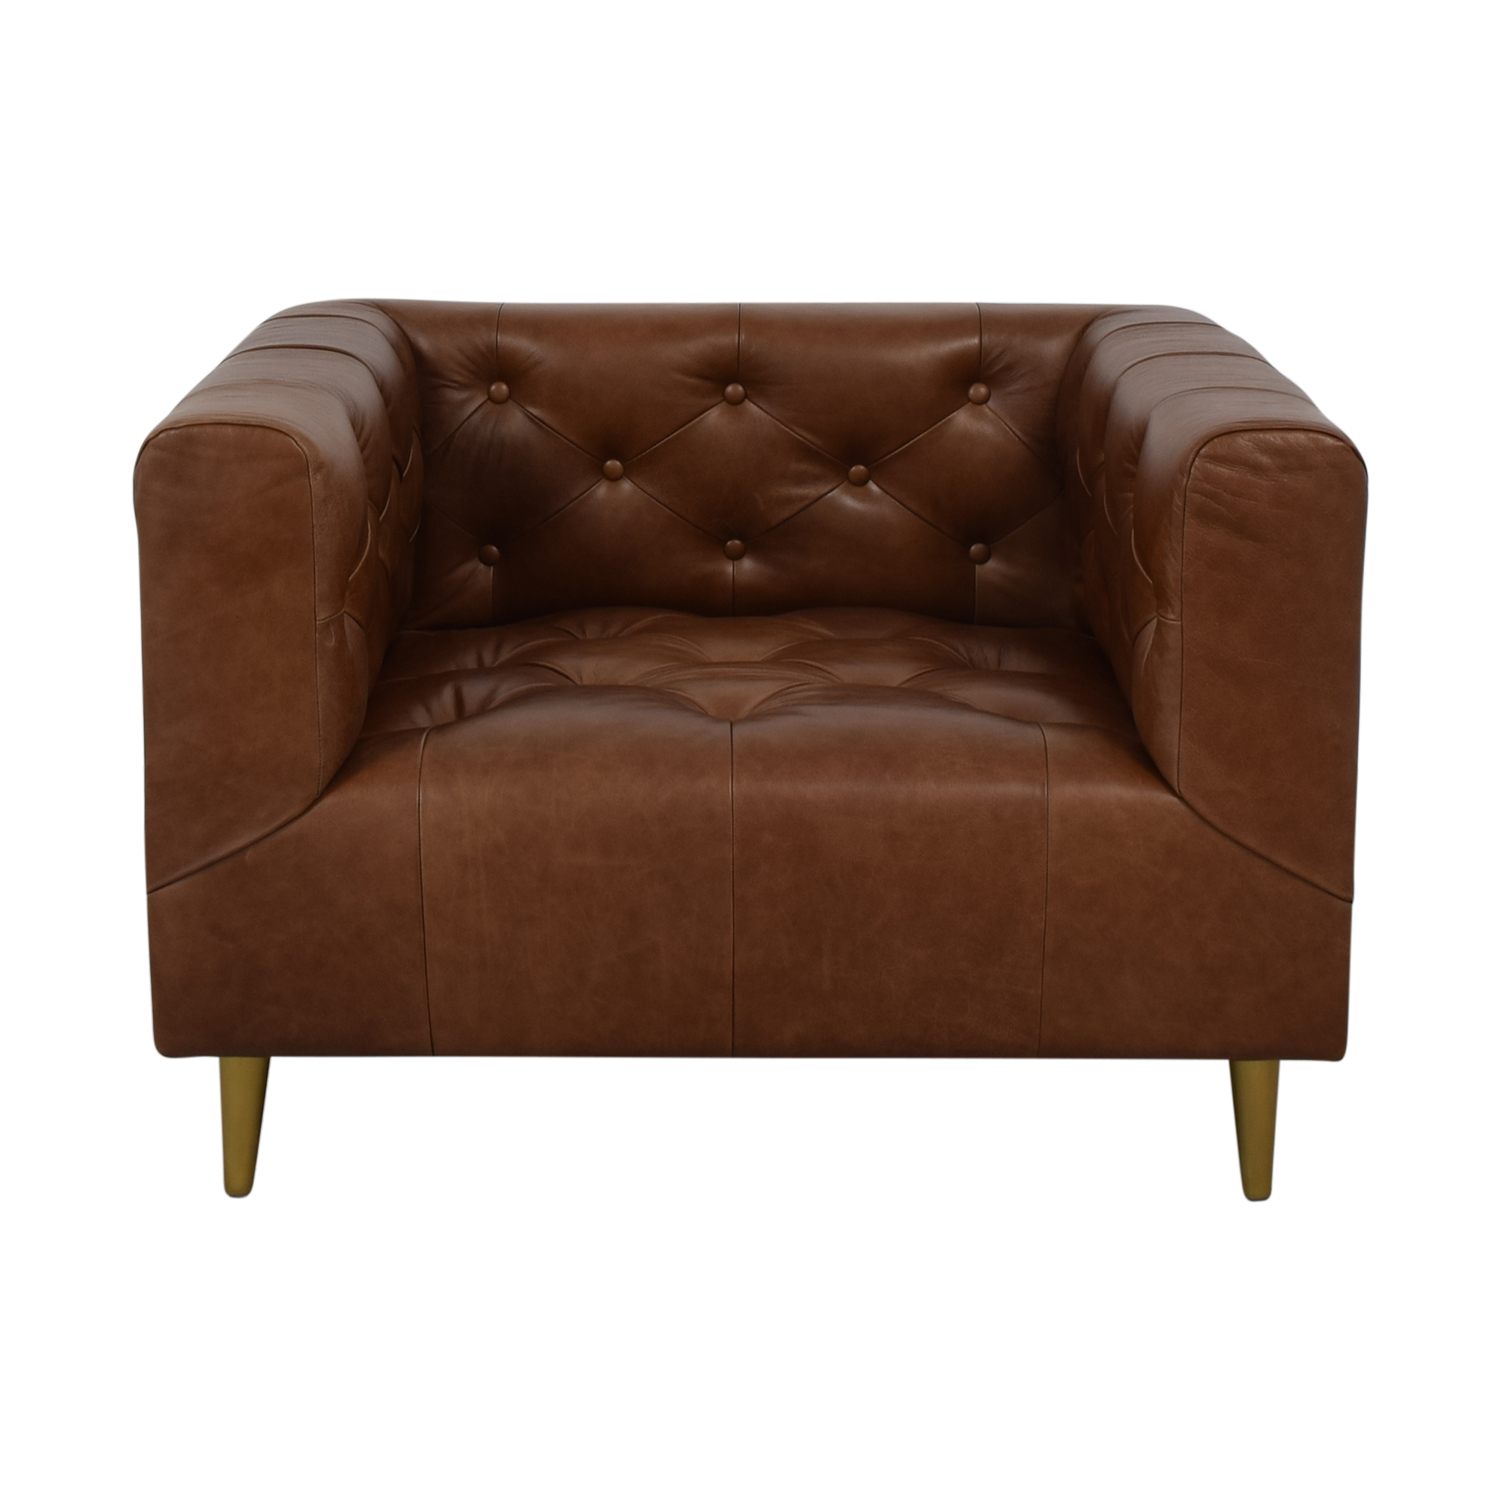 shop Interior Define Ms. Chesterfield Cognac Tufted Accent Chair online